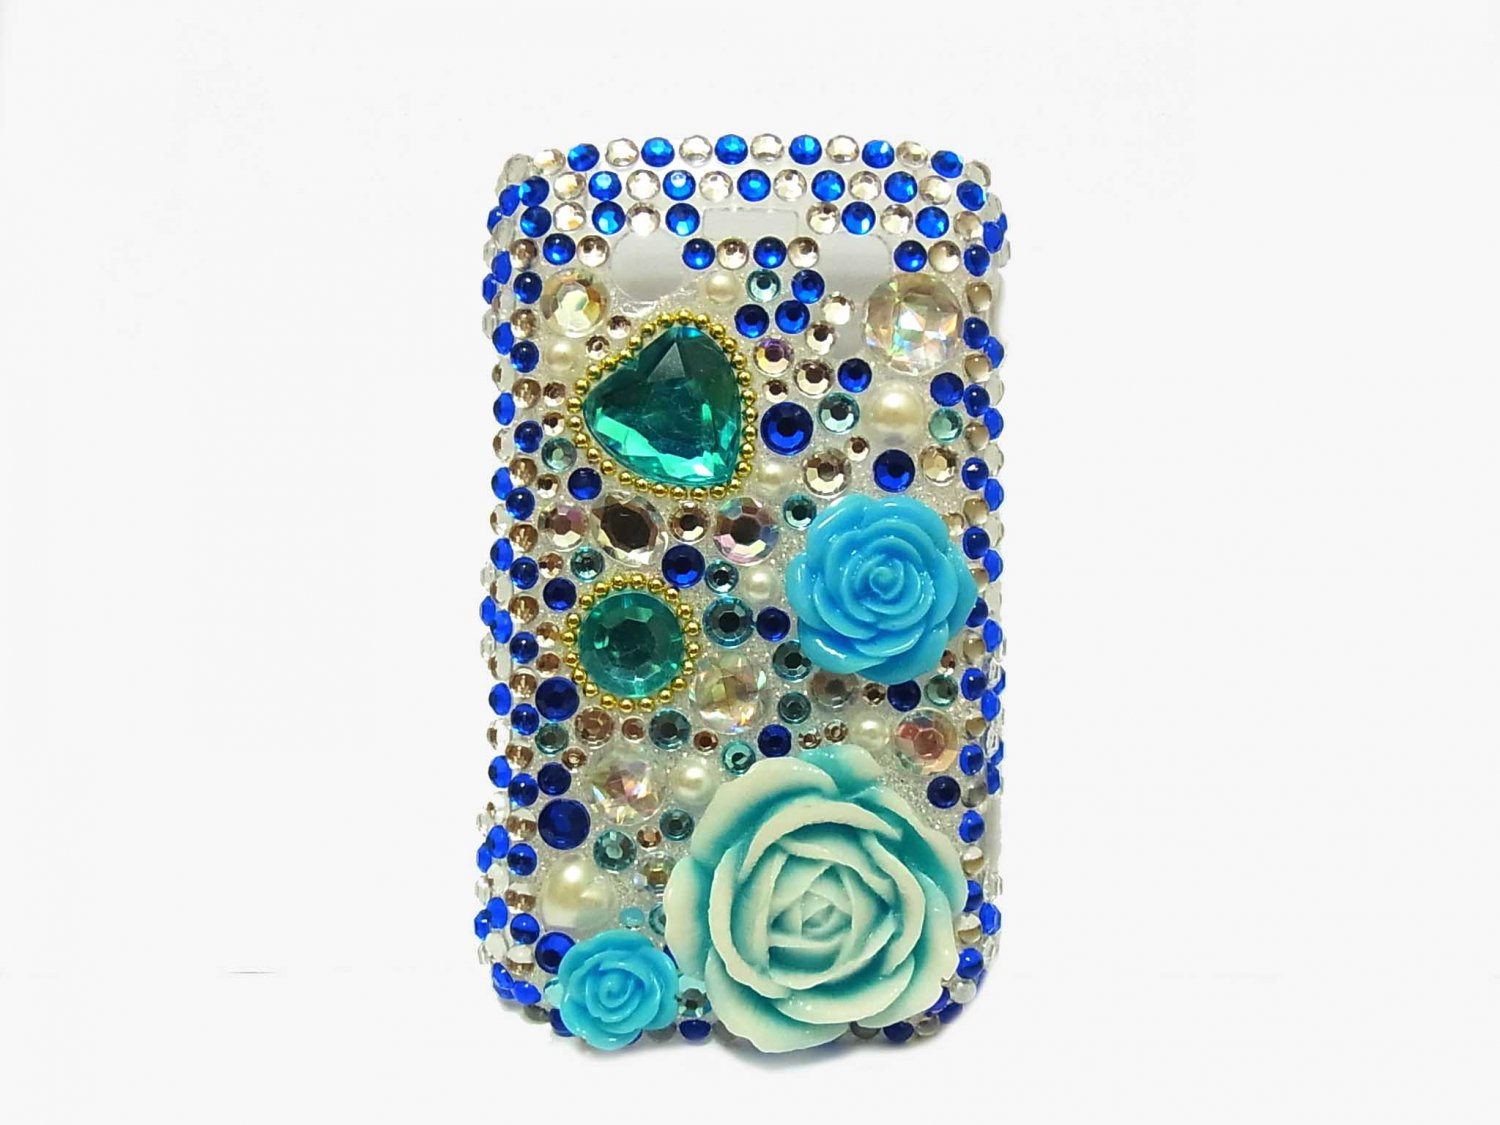 Bling Rhinestone Crystal Blue Flower Heart Case Cover for Blackberry 8520 8530 Curve